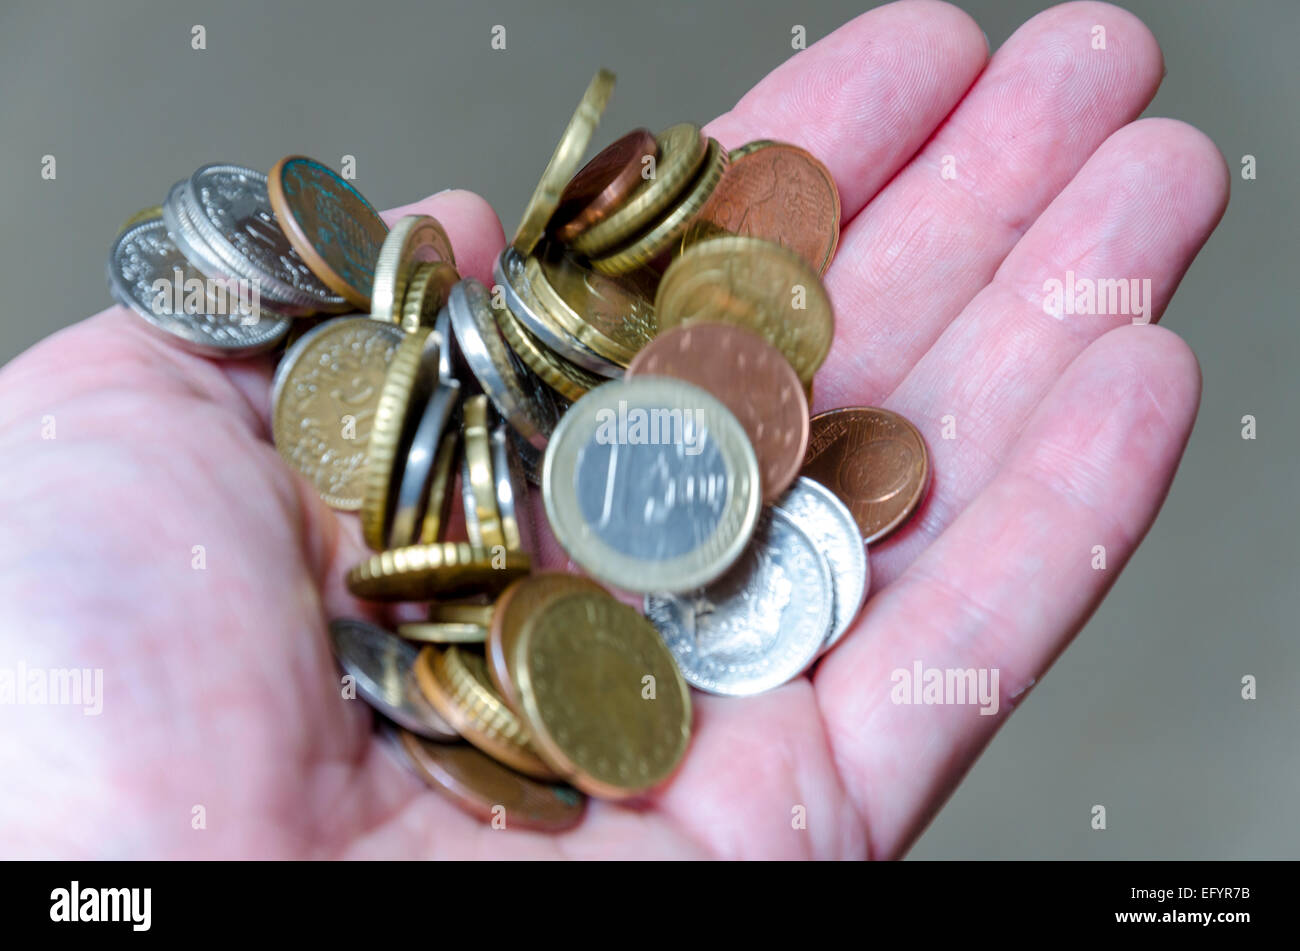 Euro coins in hand - Stock Image